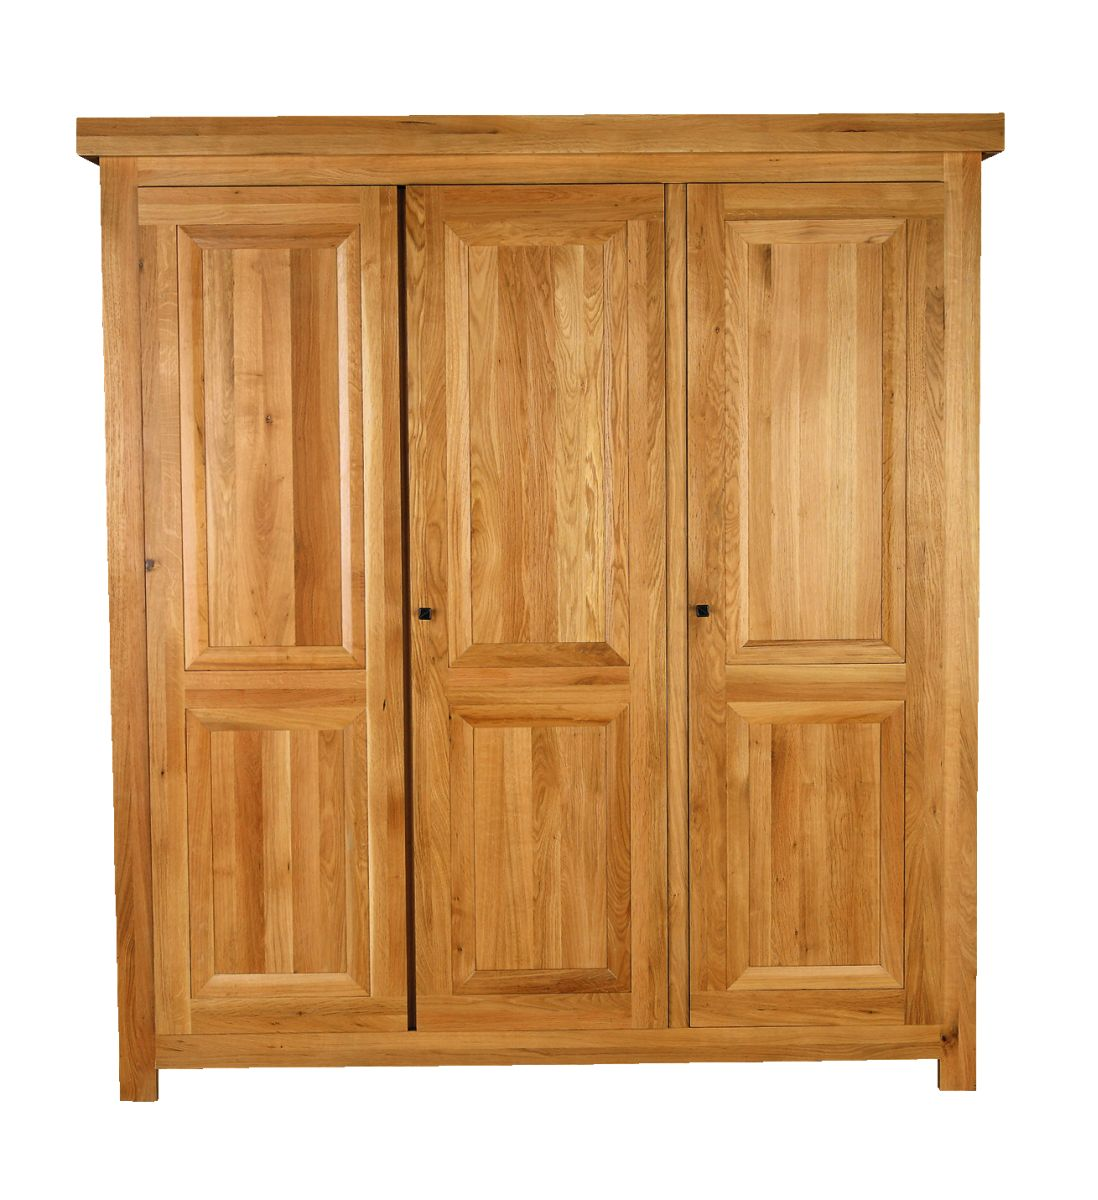 Solid Oak Wardrobe, 3 Doors